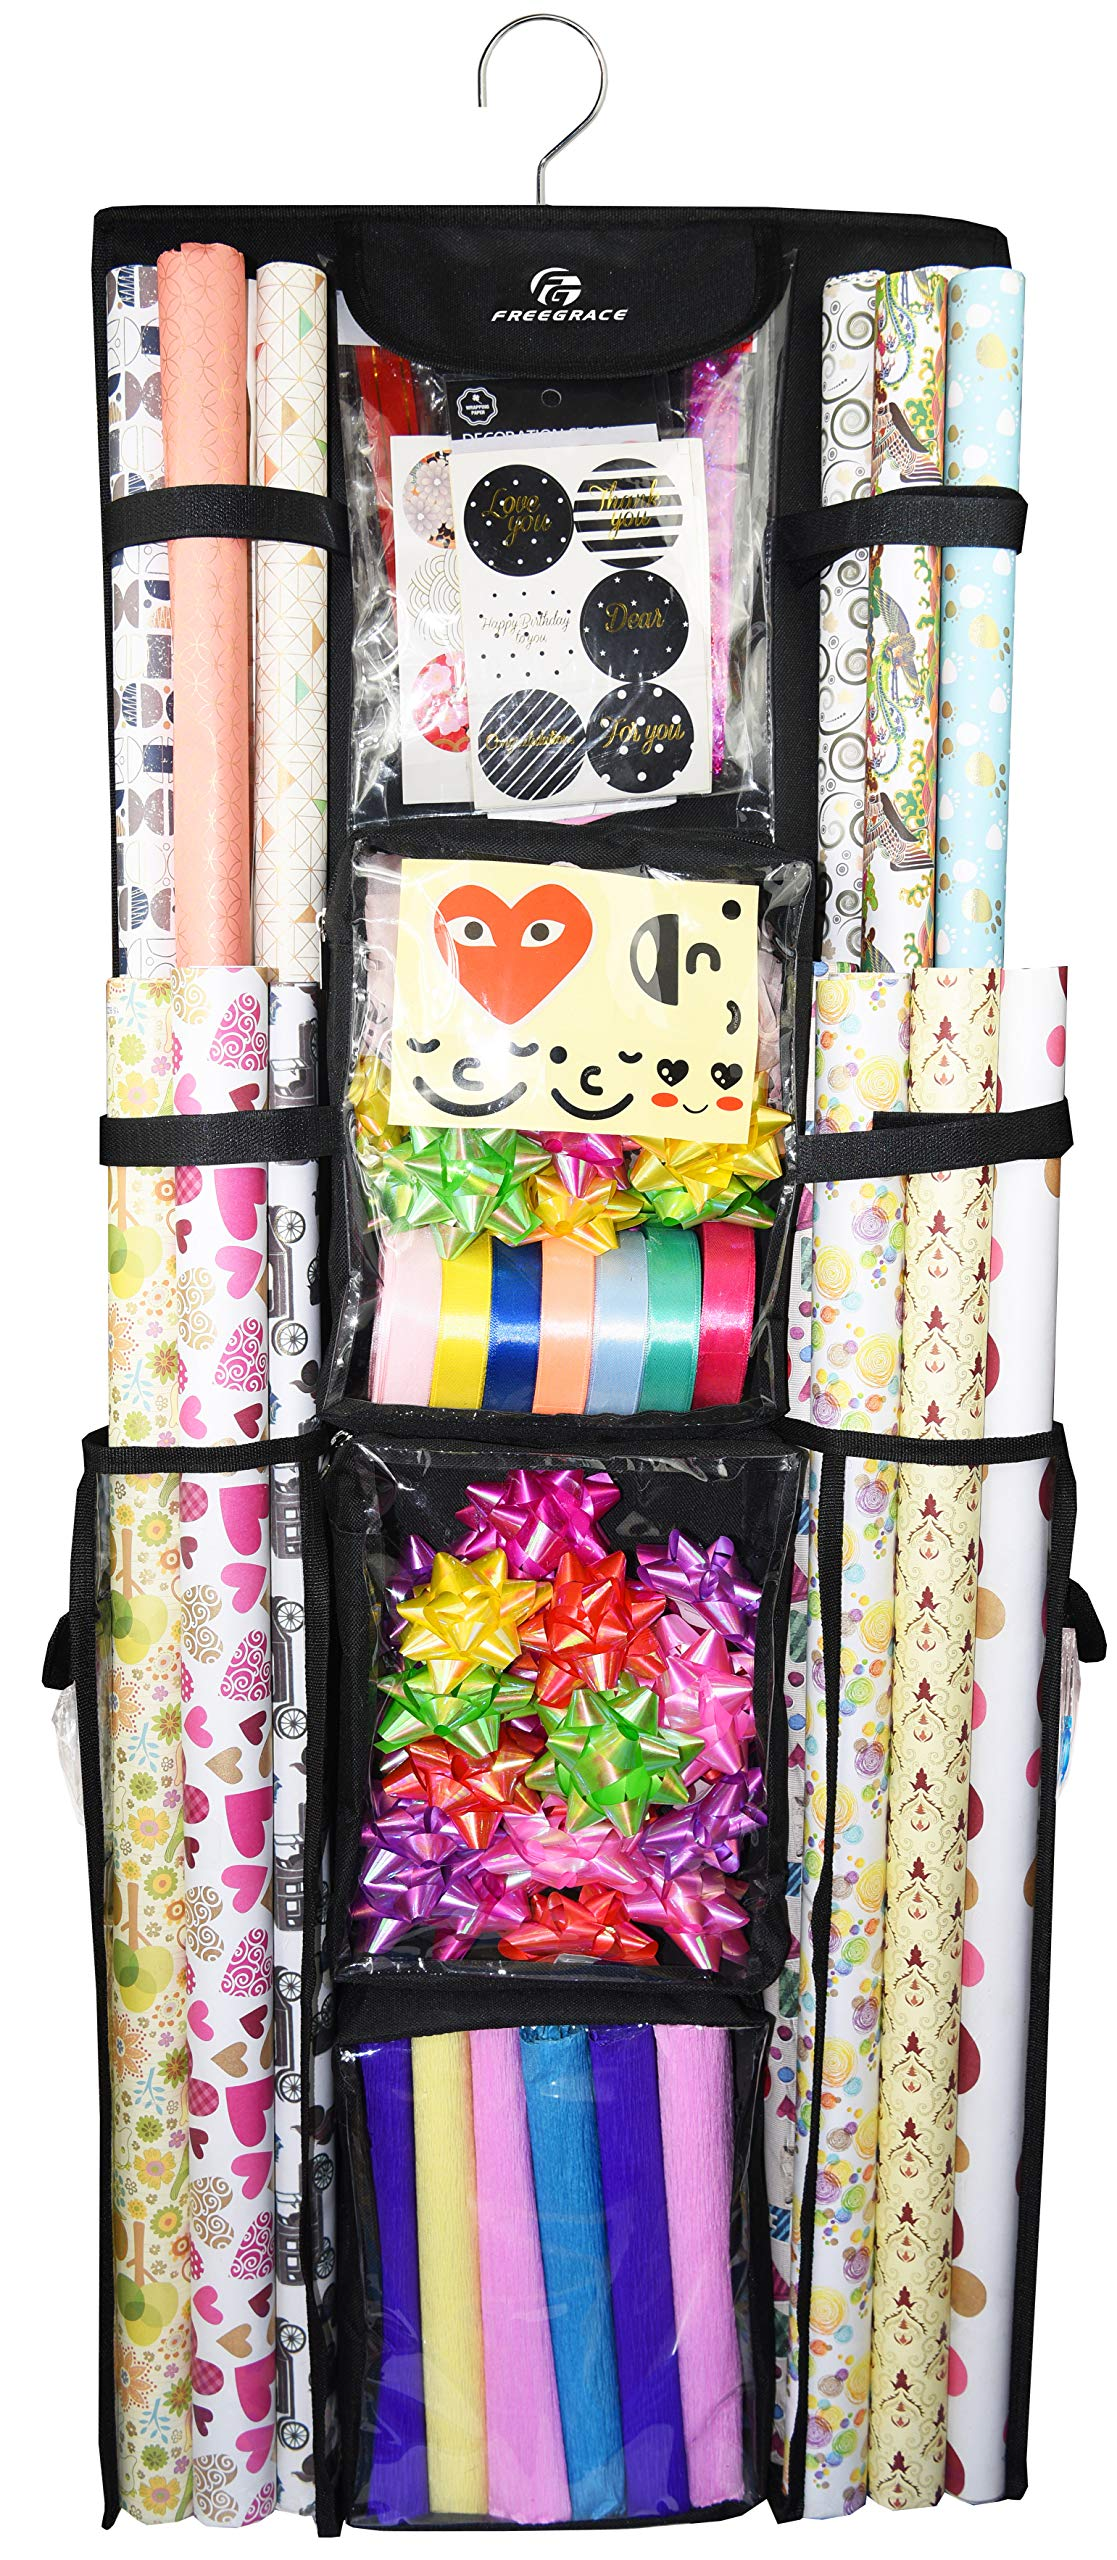 Freegrace Double Sided Hanging Gift Wrap Organizer   Large 16'' x 41'' Wrapping Paper Rolls Storage Bag   Tearproof & Space Saving Closet Gift Bag Organization Solution (Black) by Freegrace